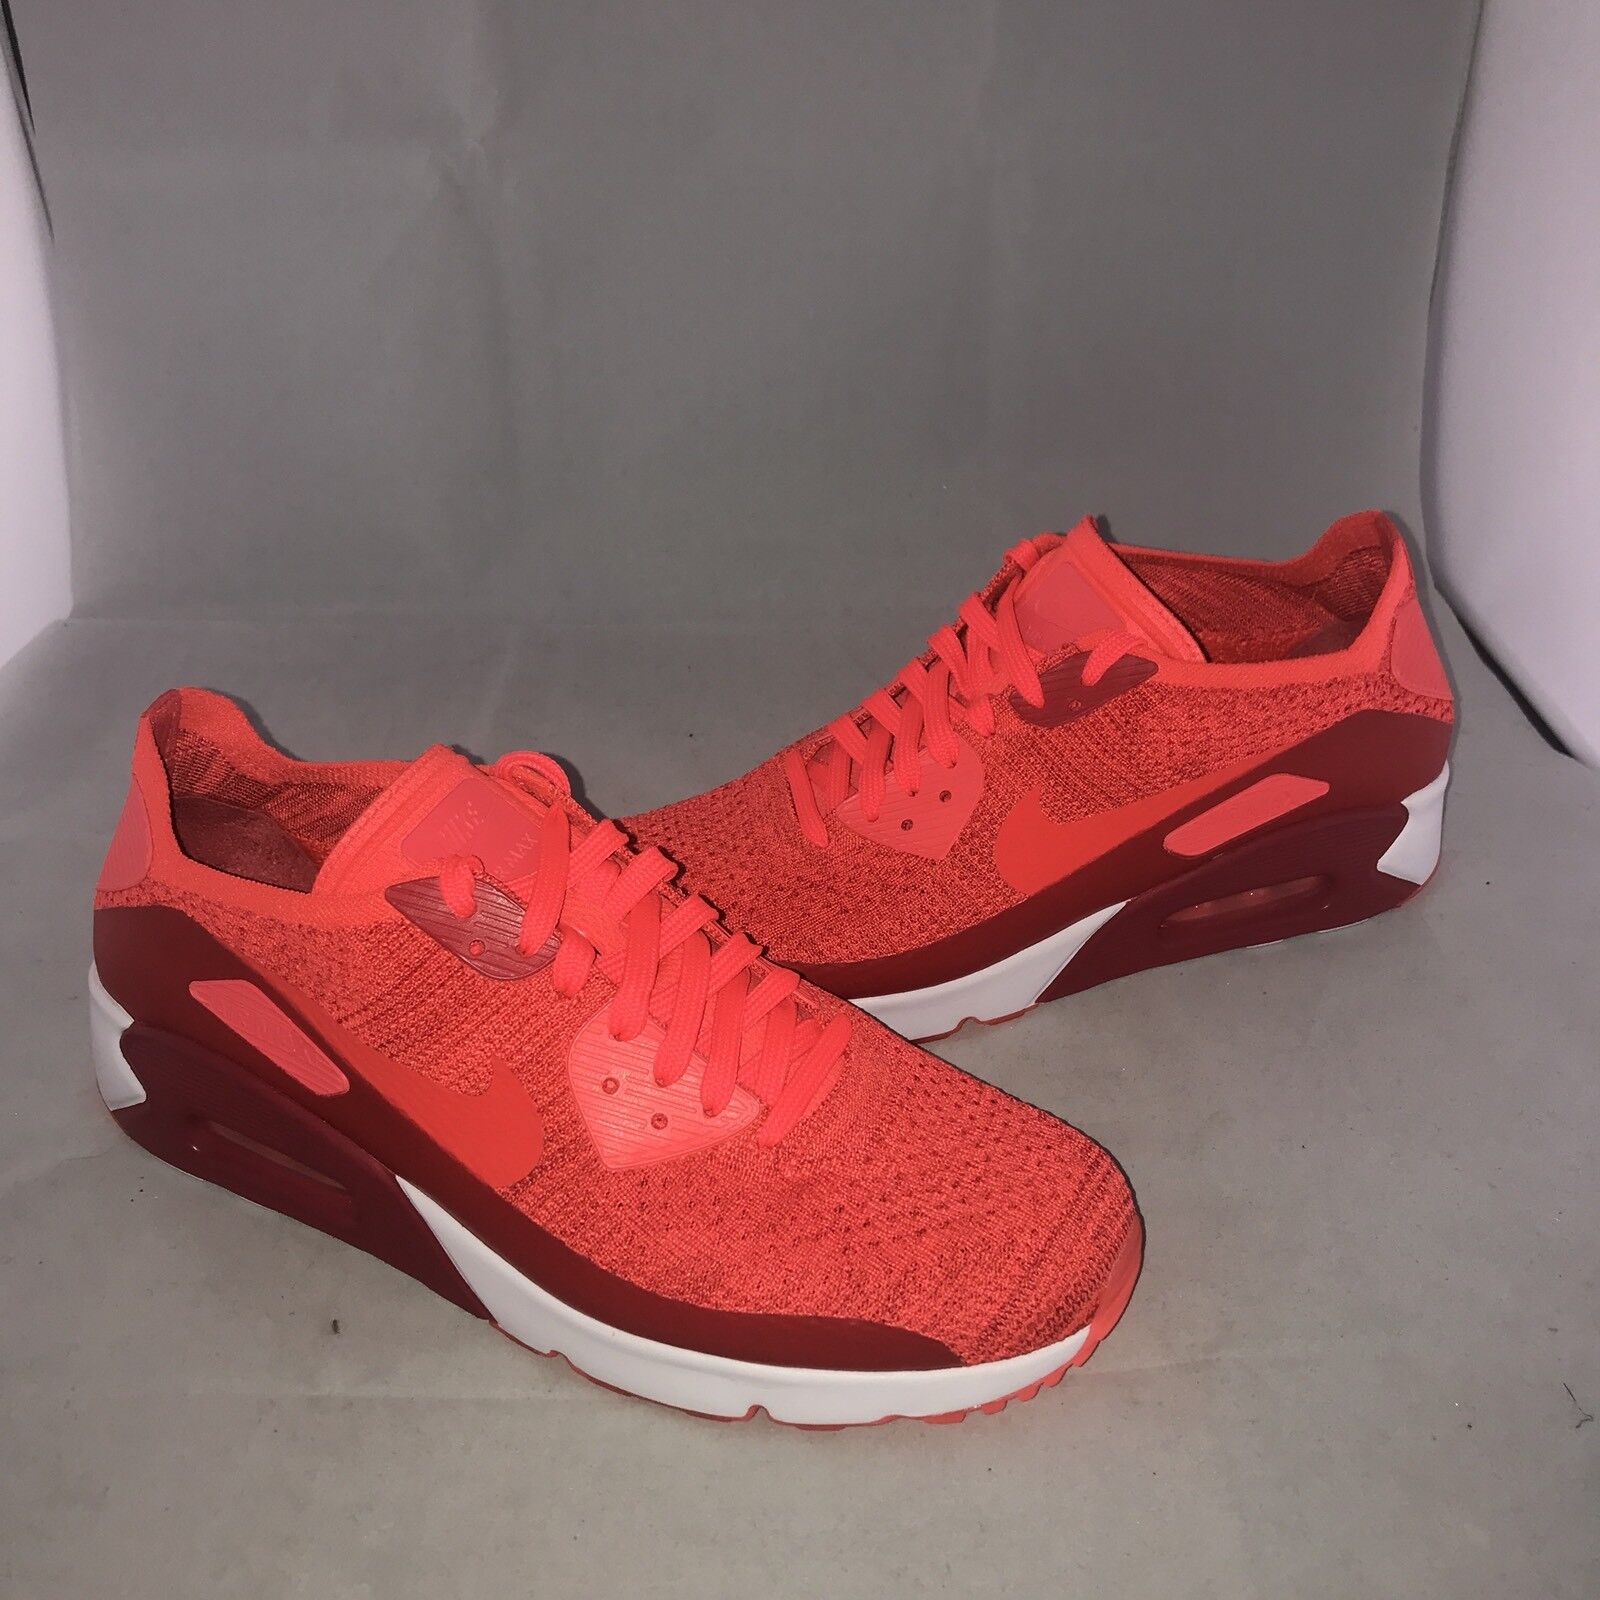 Nike Air Max 90 Ultra 2.0 Flyknit Shoes Mens 875943-600 Red Running Shoes Flyknit Size 10 5a3538